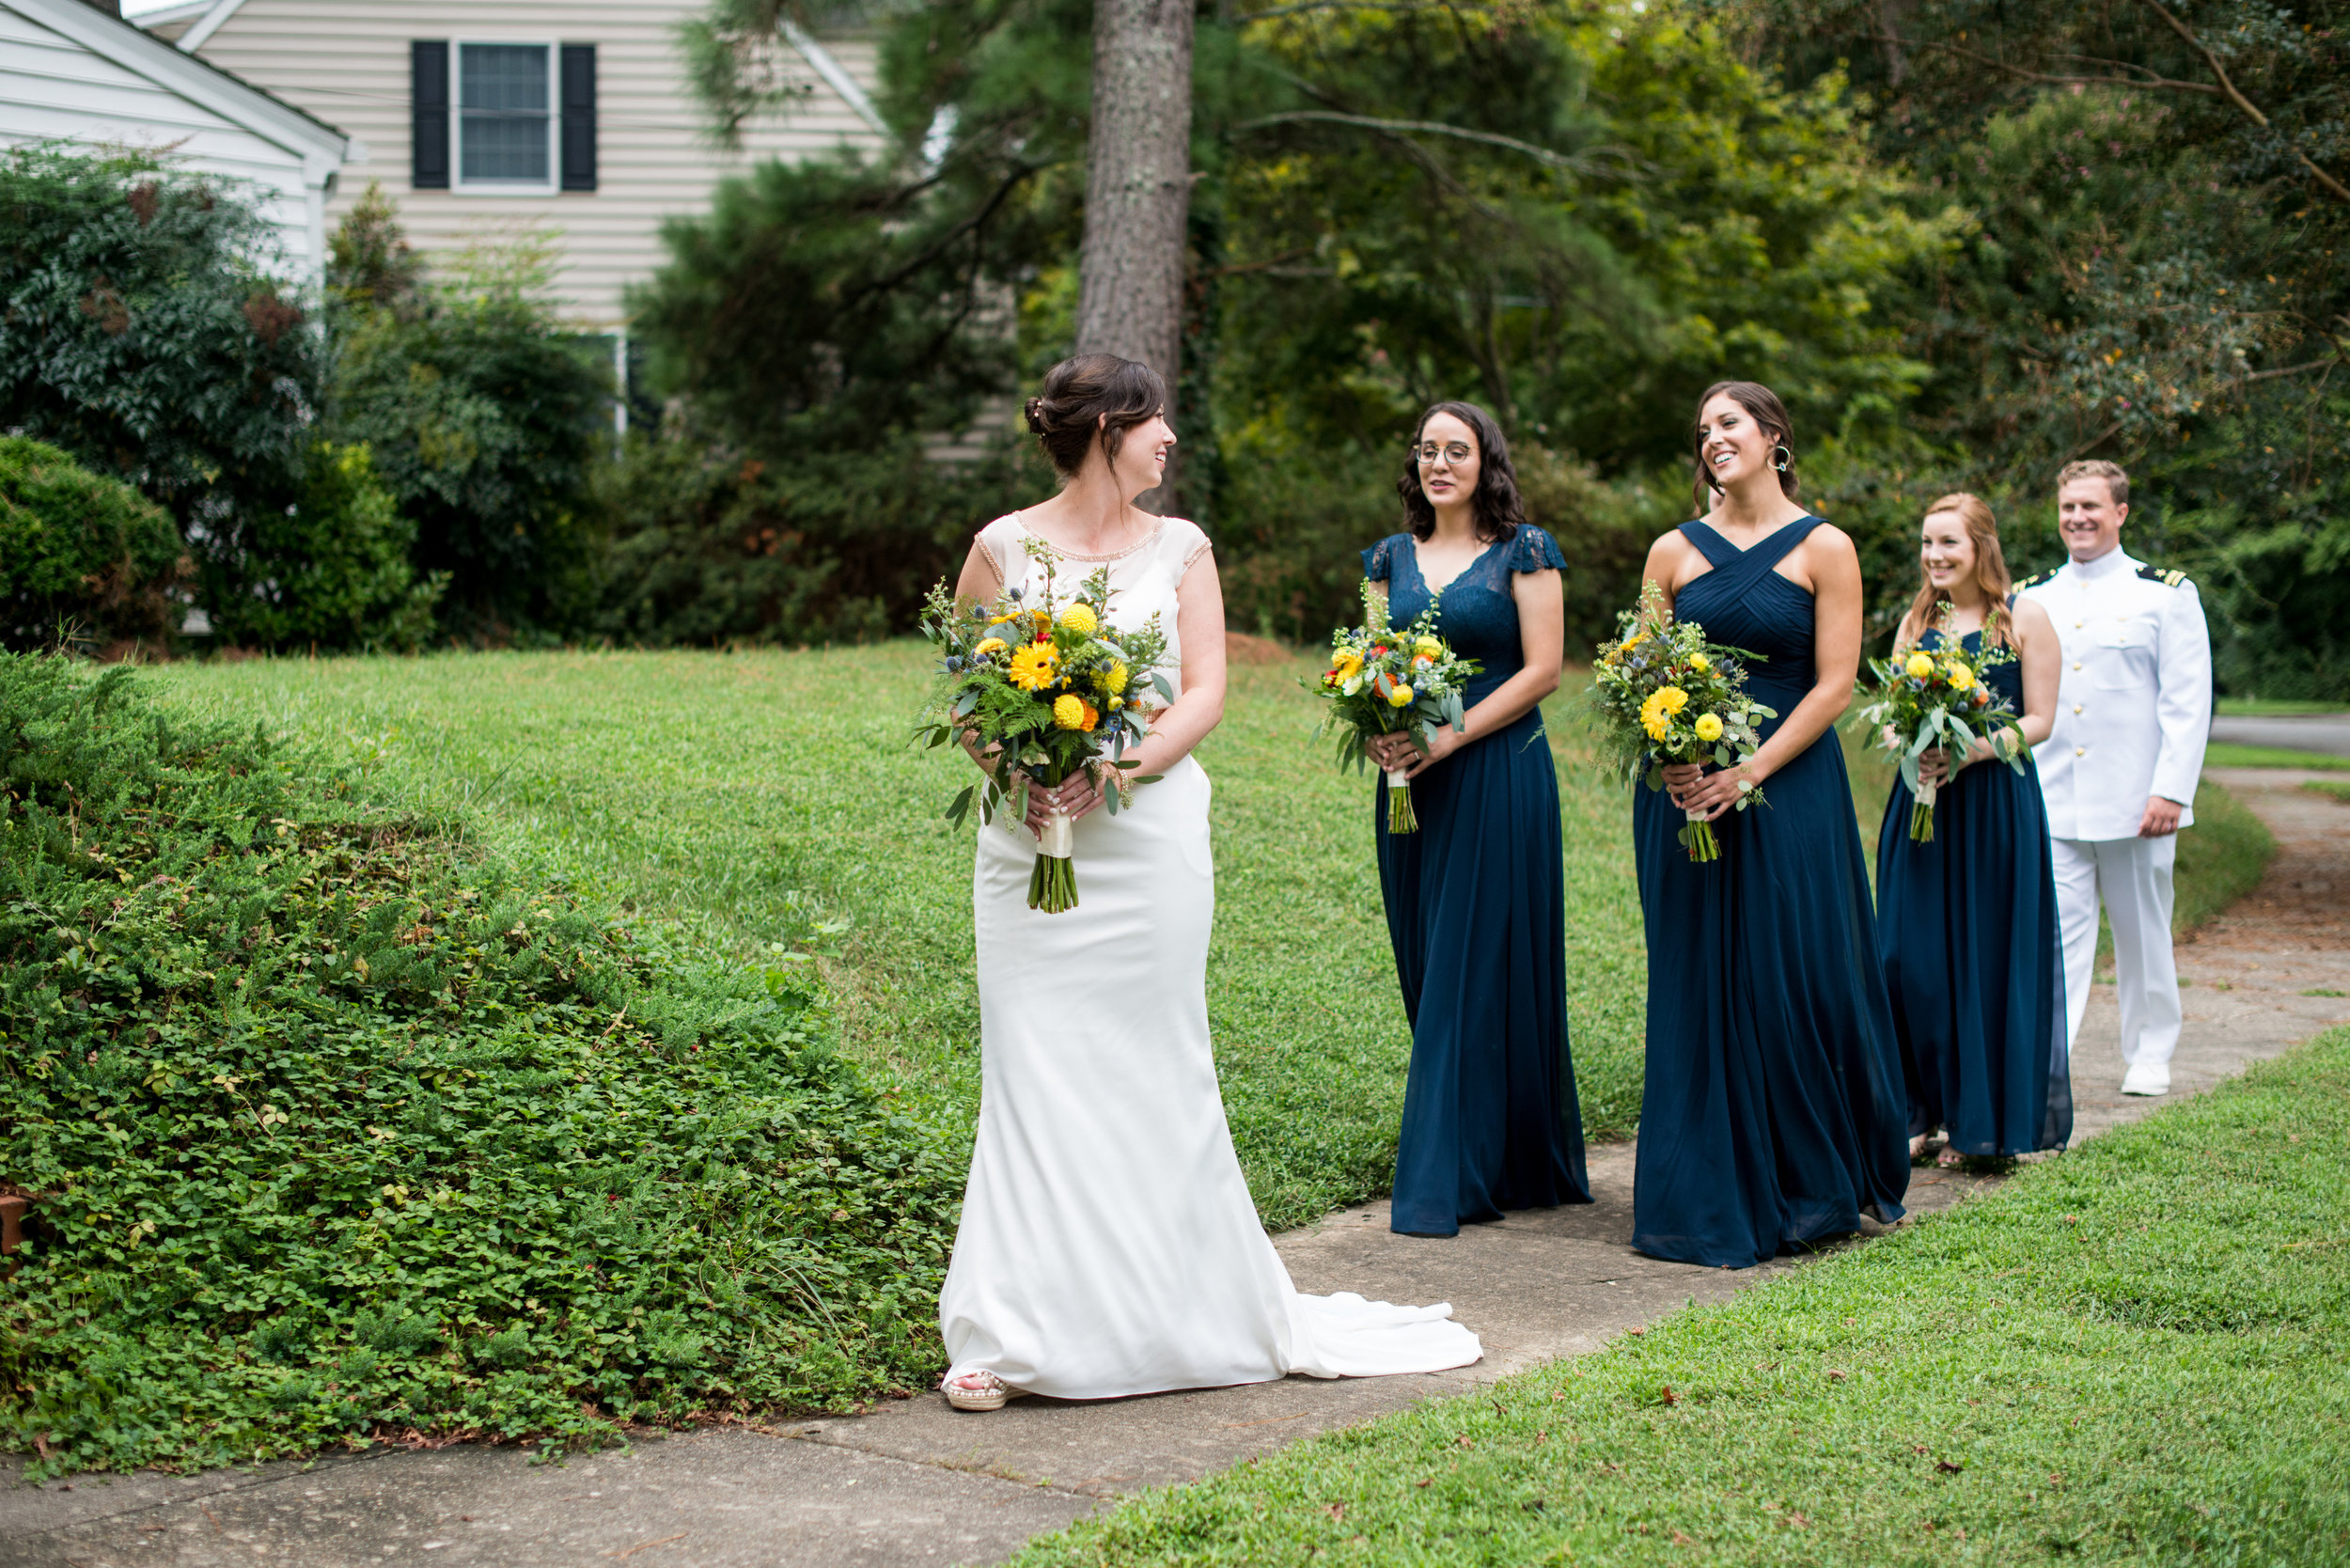 Suffolk_Wedding_in_Hurricane_Florence-33.JPG